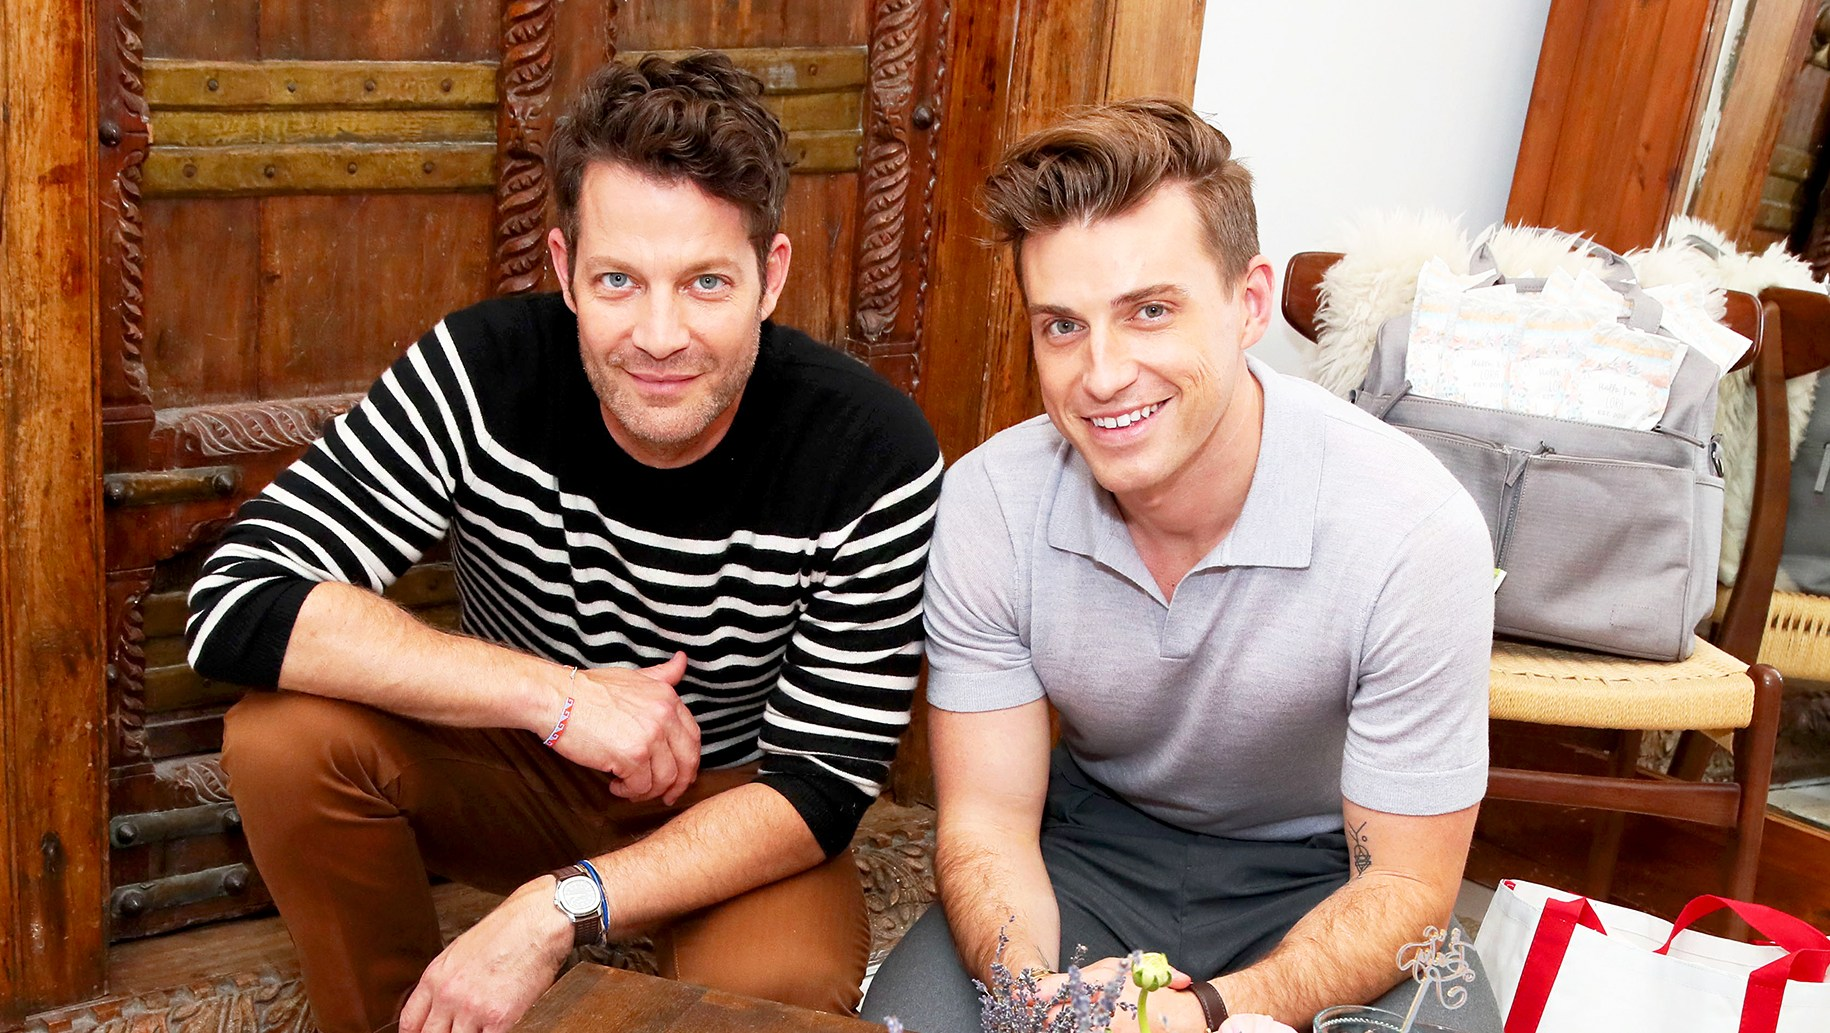 Nate Berkus and Jeremiah Brent and family team up with Huggies to launch Huggies Made by You, its first-ever personalized diaper. Available exclusively online at HuggiesMadeByYou.com.